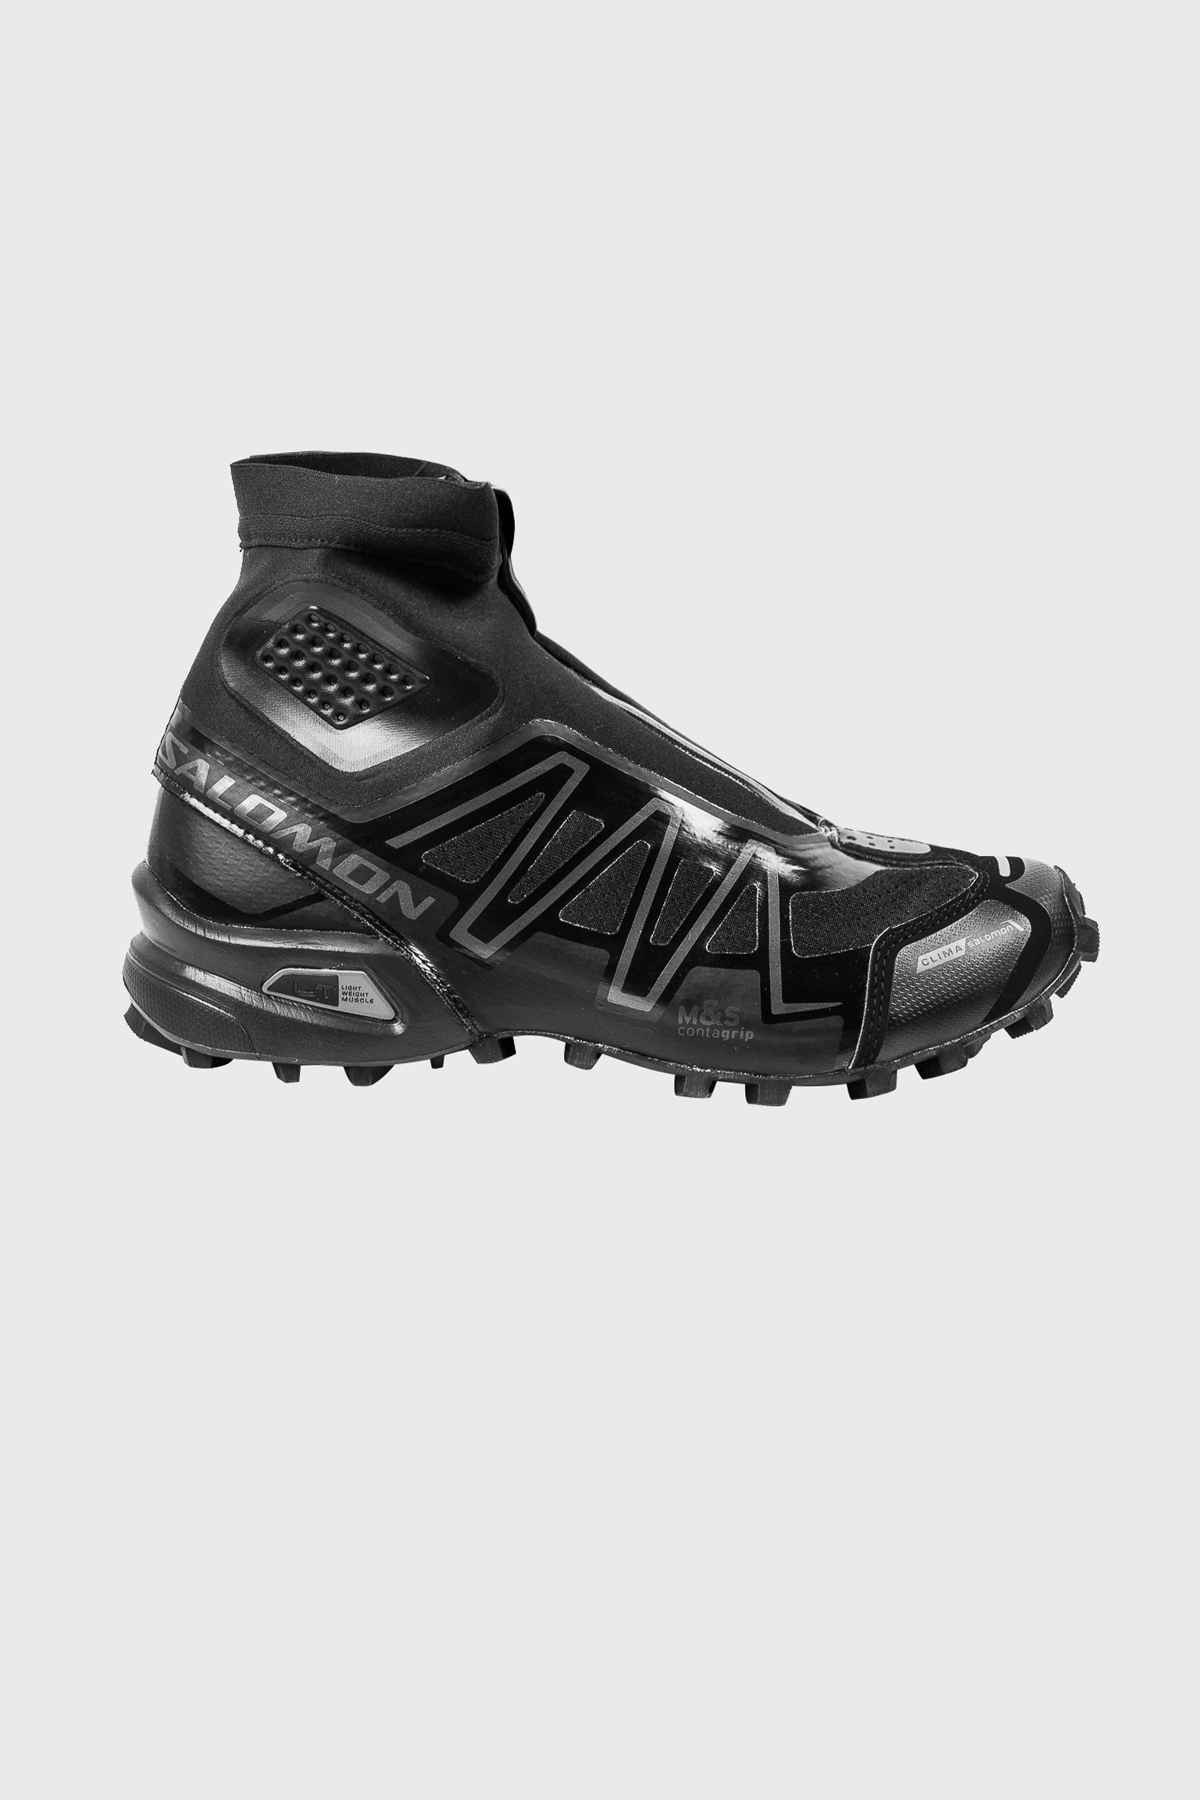 Salomon - SNOWCROSS ADV LTD - Black